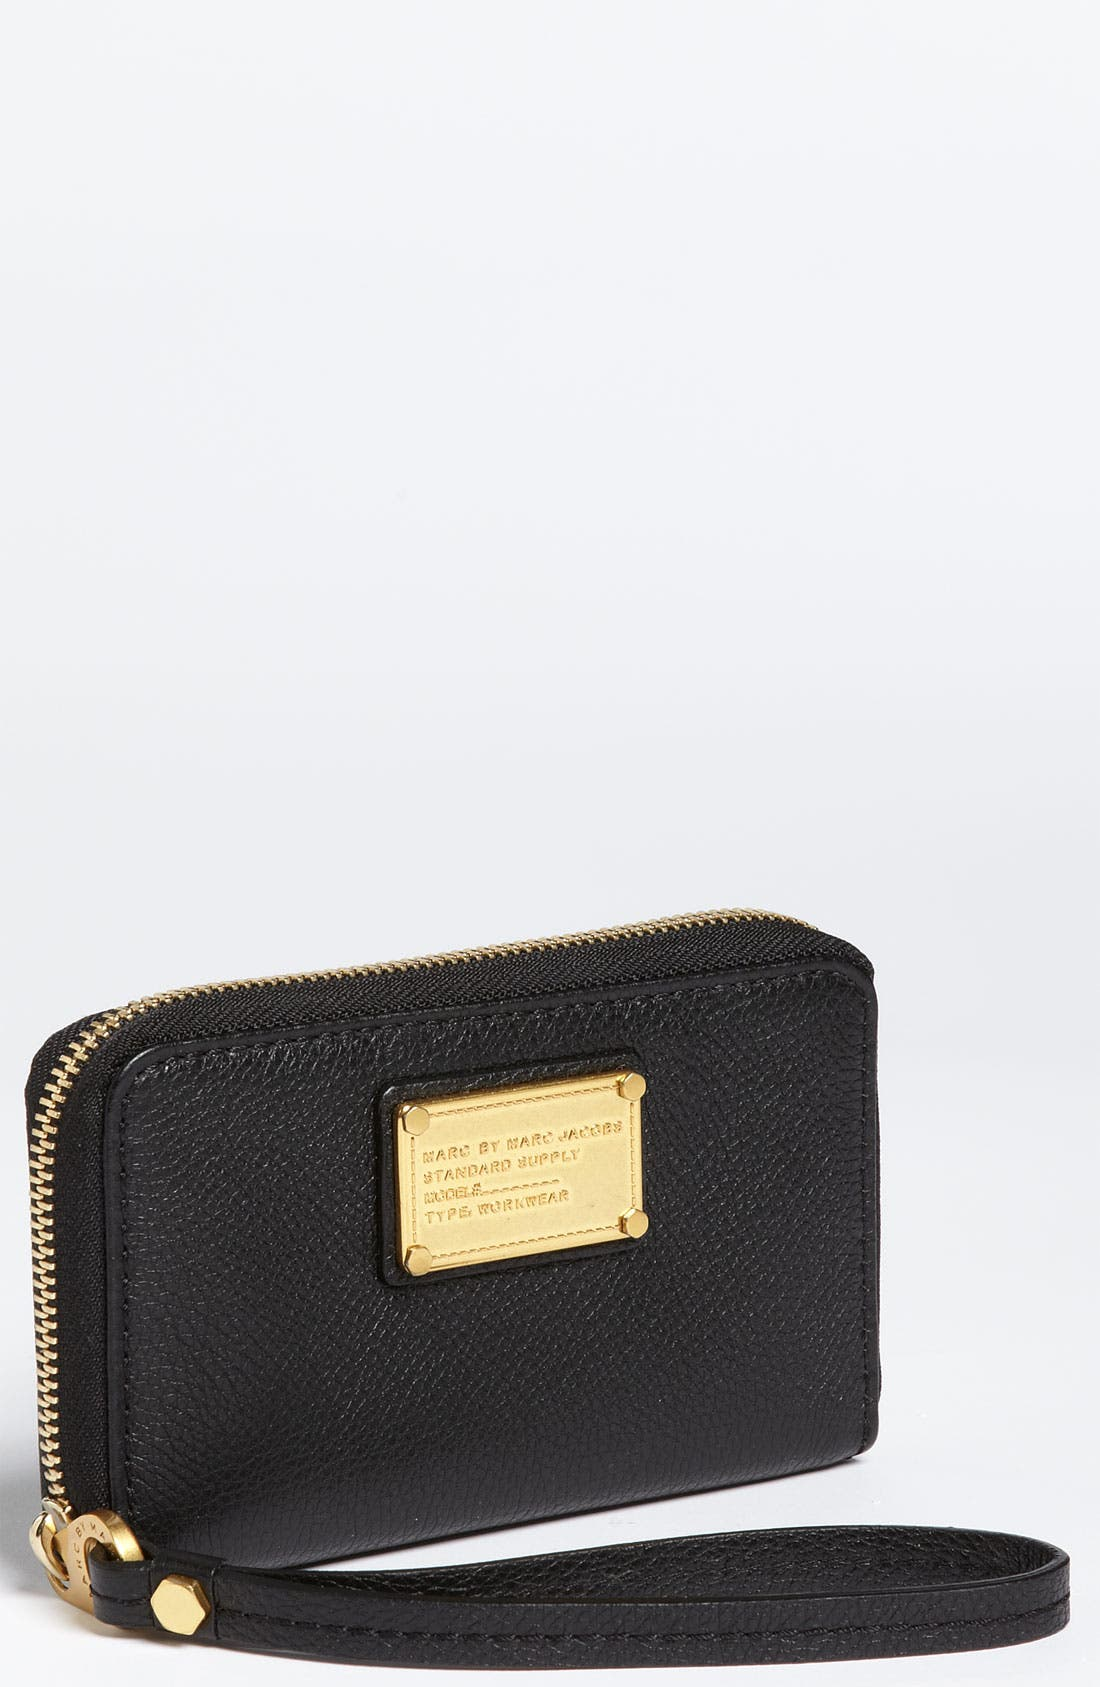 Alternate Image 1 Selected - MARC BY MARC JACOBS 'Classic Q - Wingman' Phone Wallet